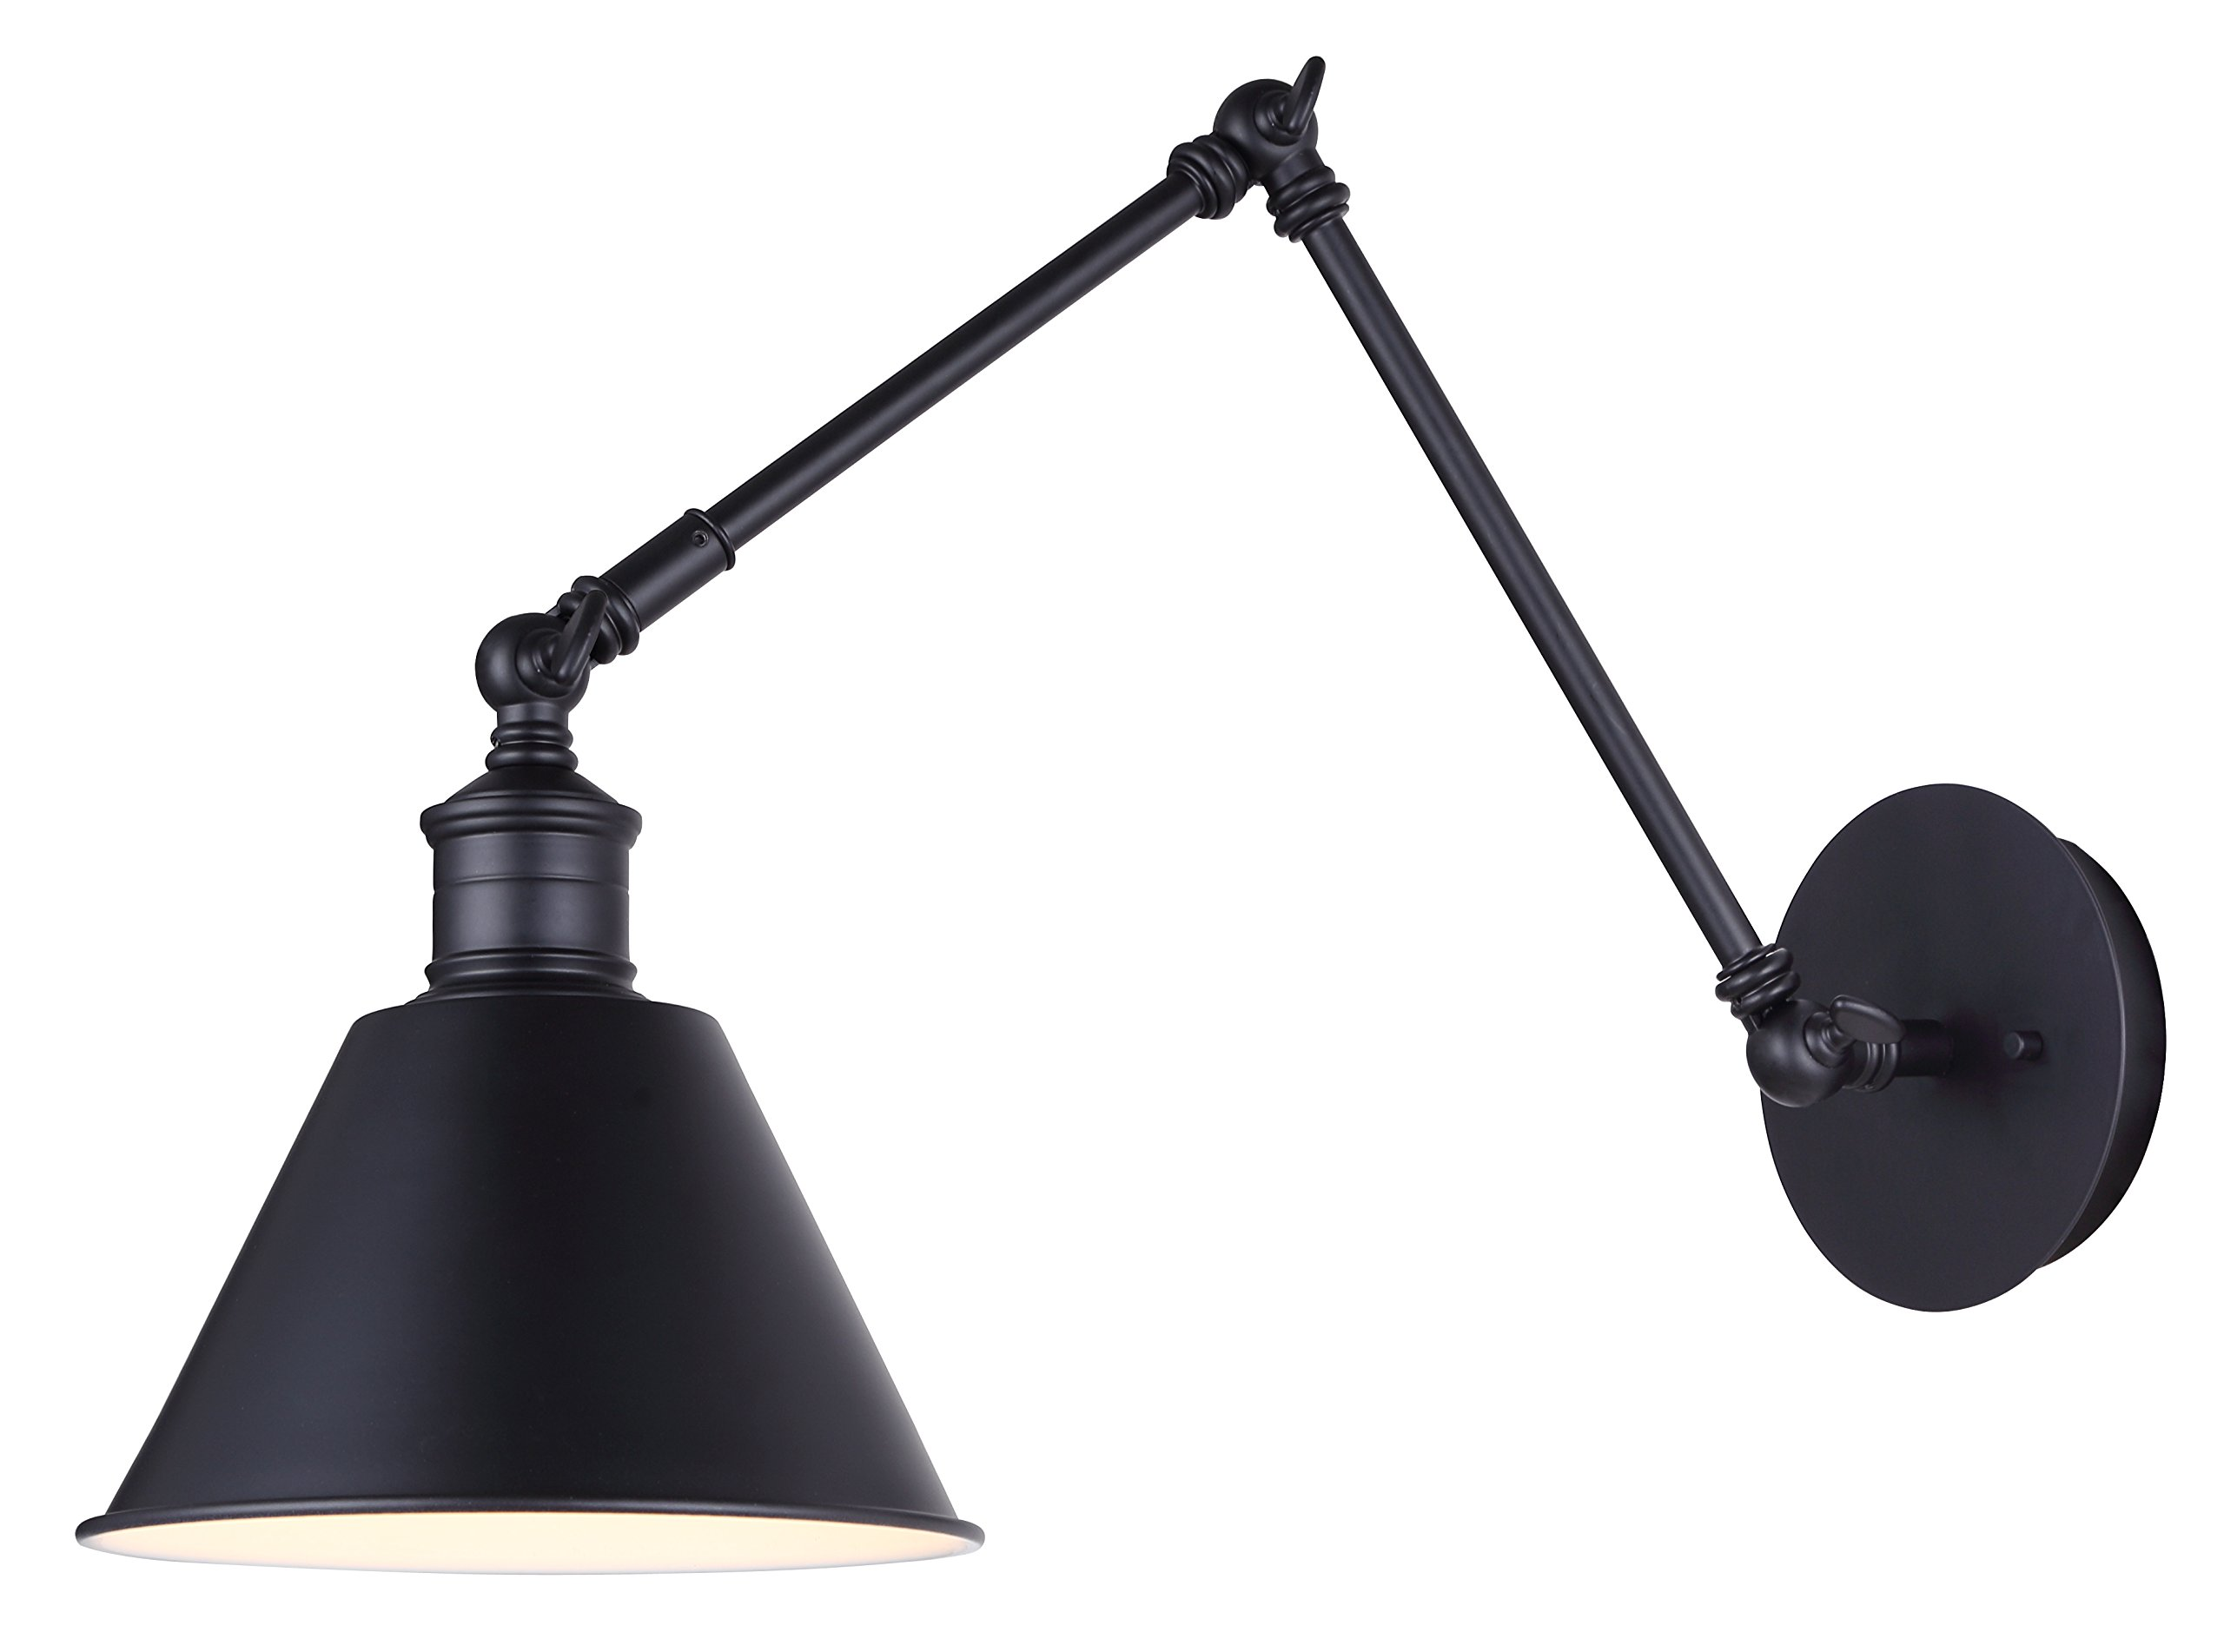 Canarm 1 Light Morocco Wall Fixture with Matte Black Finish and Painted White Interior - Adjustable